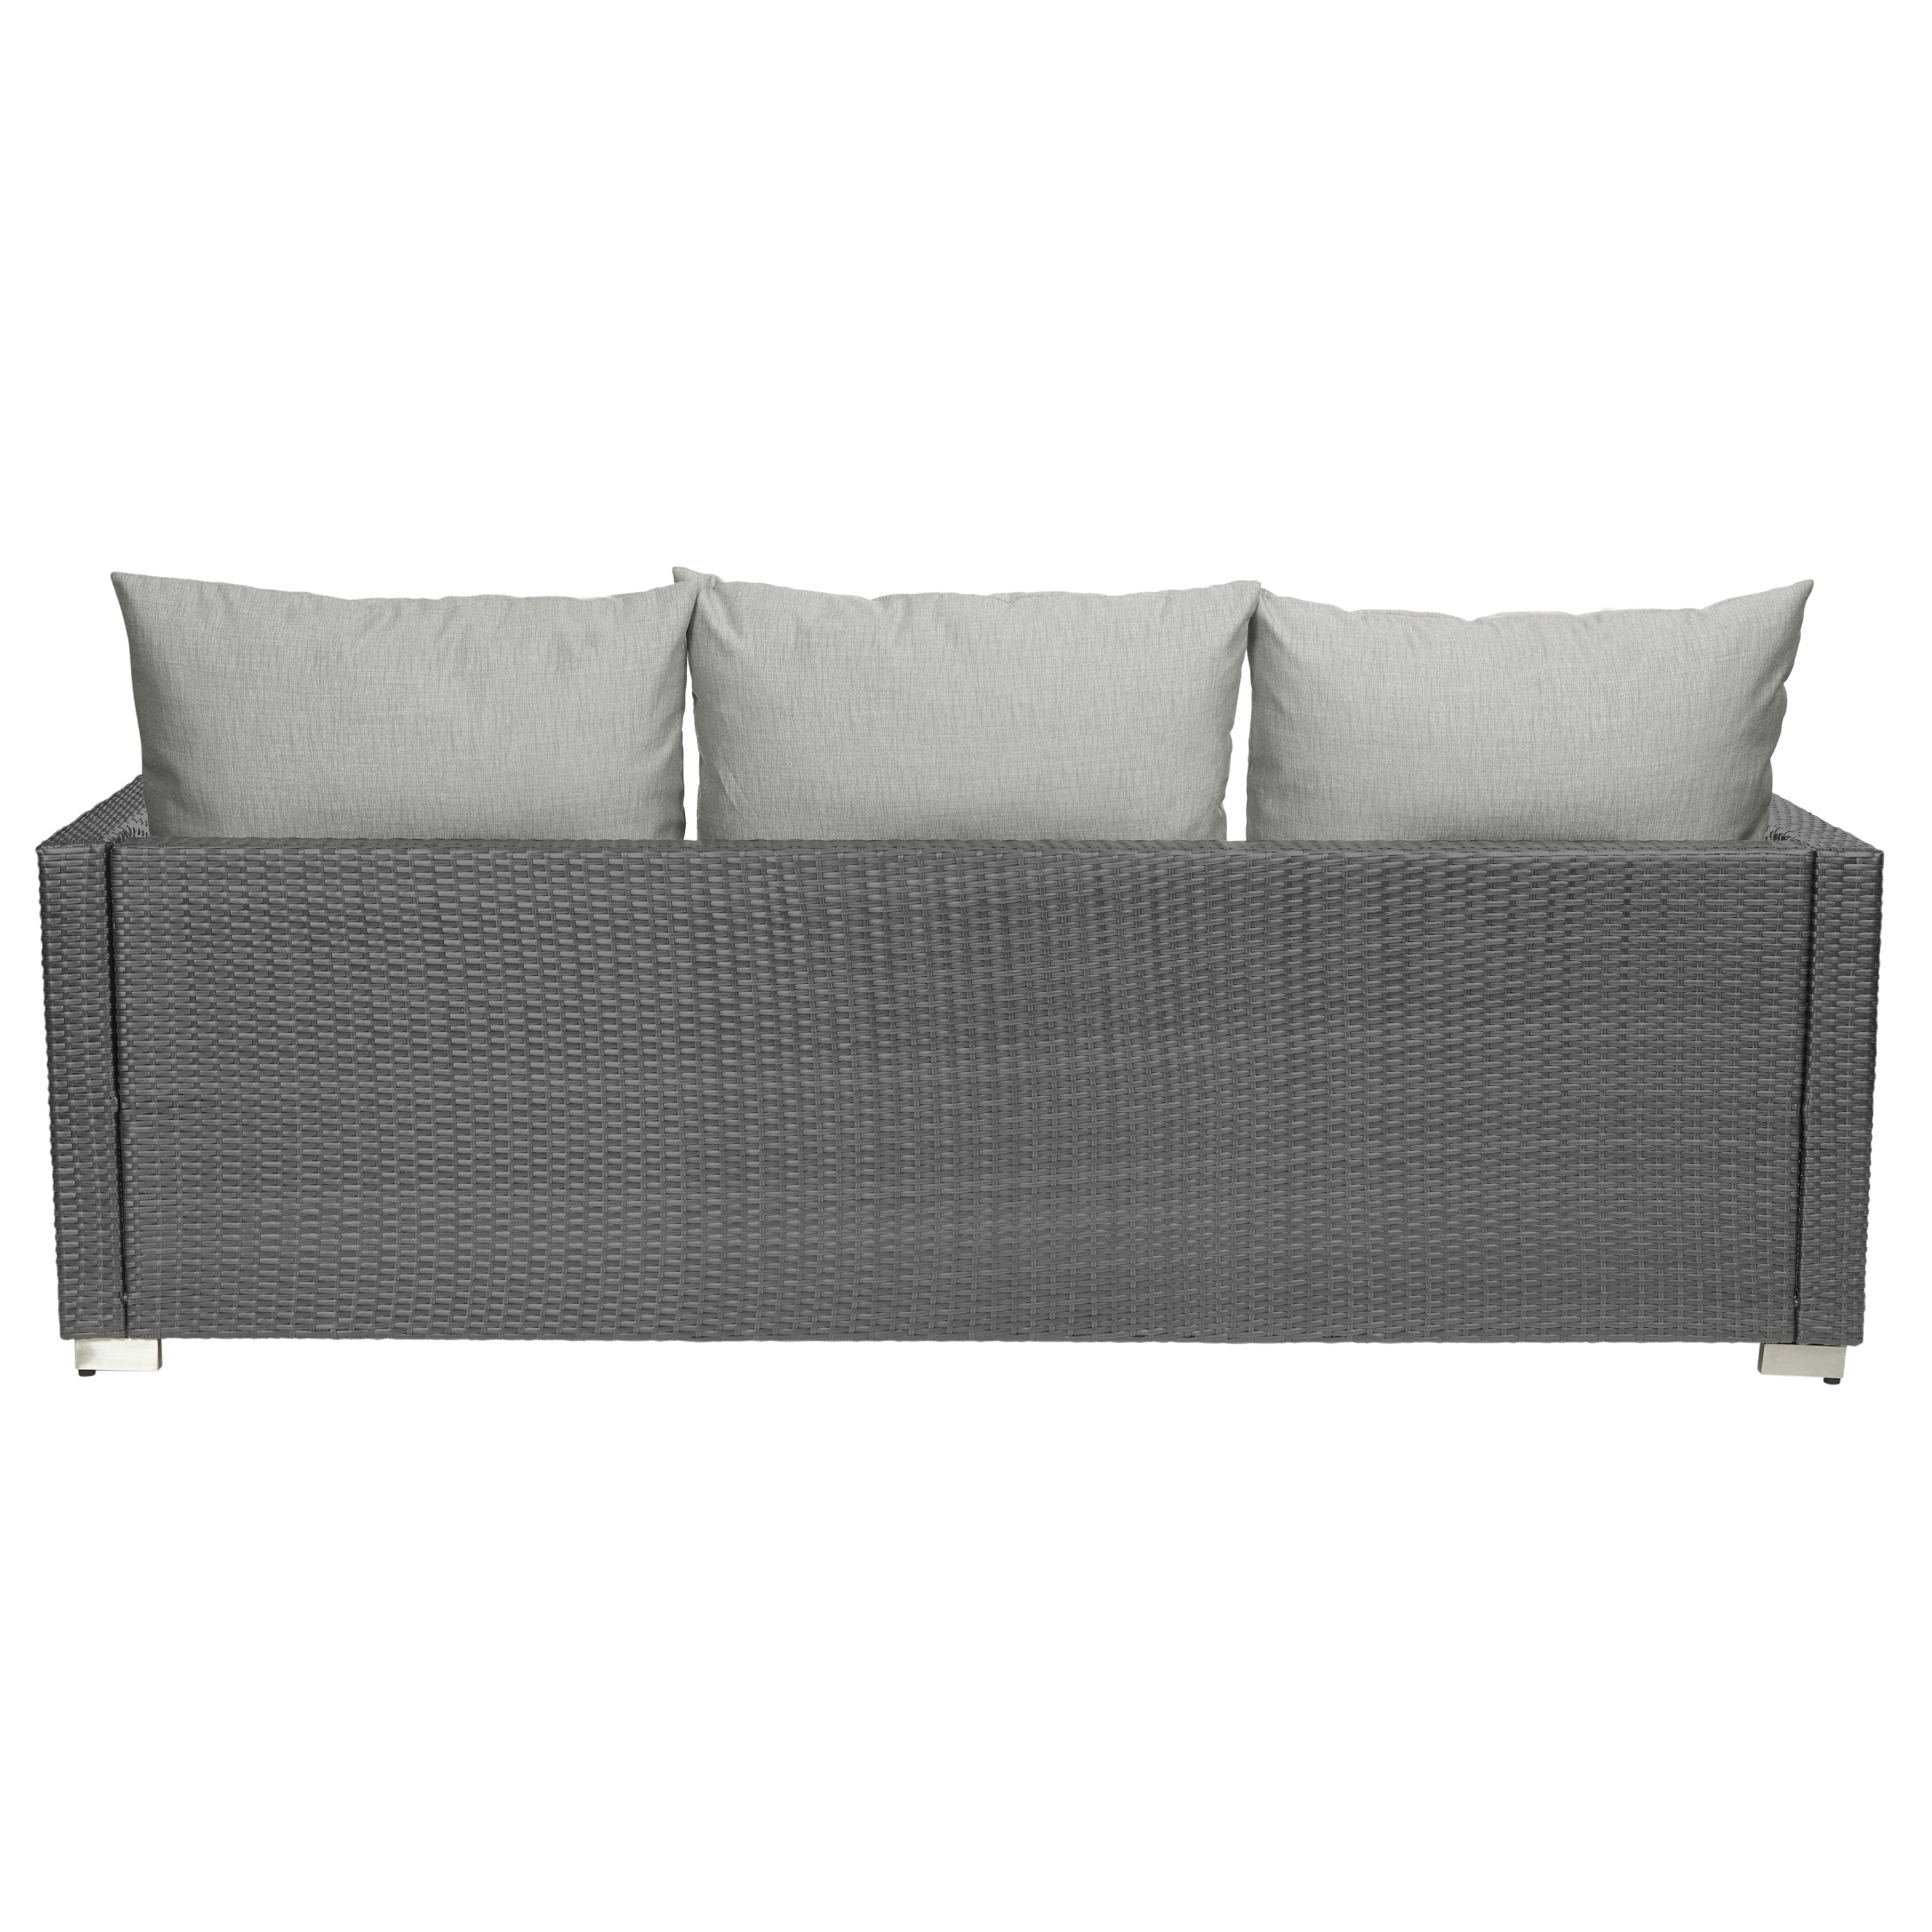 oxford 4 piece brown rattan effect sofa set small for bedroom sitting area 3 seater grey with taupe cushions